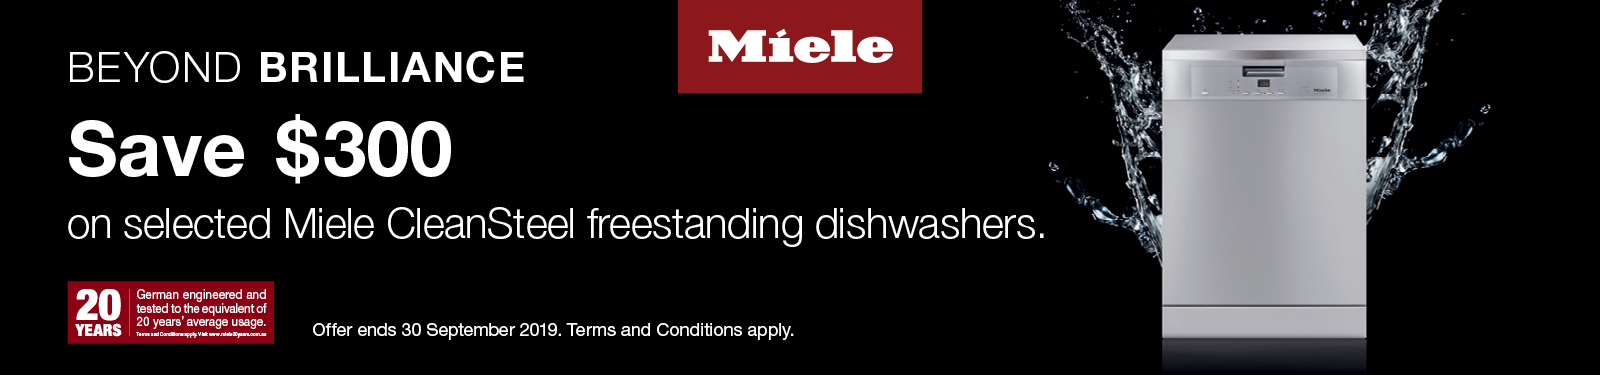 Miele Save up to $300 on Dishwashers